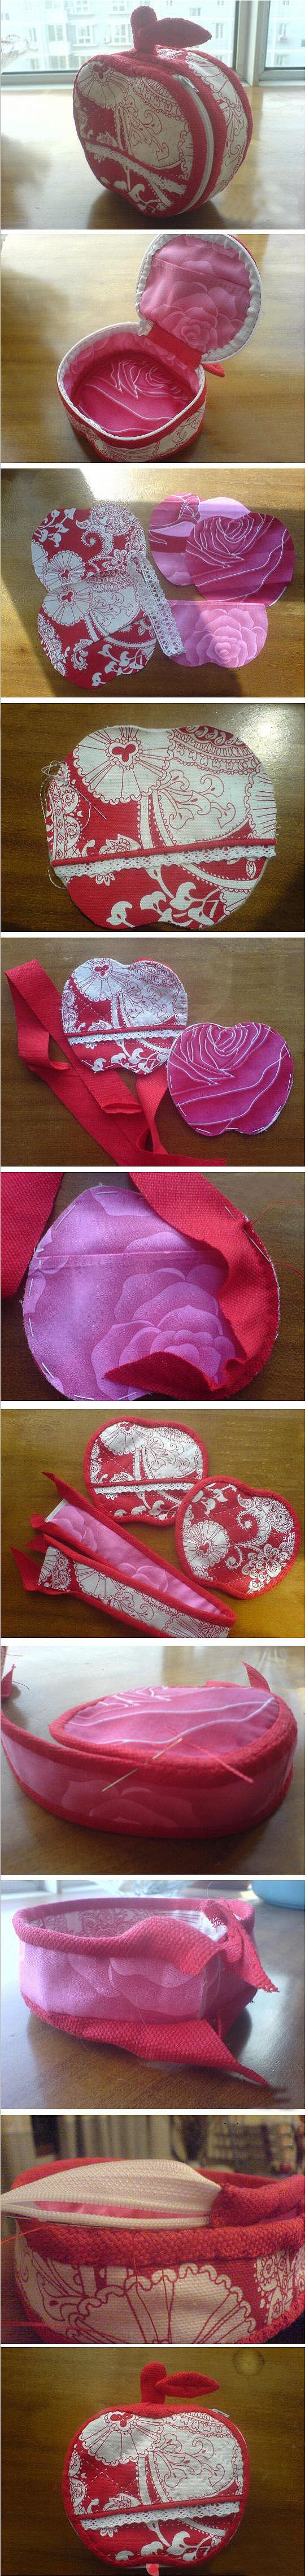 apple sewing box ► the apple idea is cute, but this also shows a great way to make a box shaped case